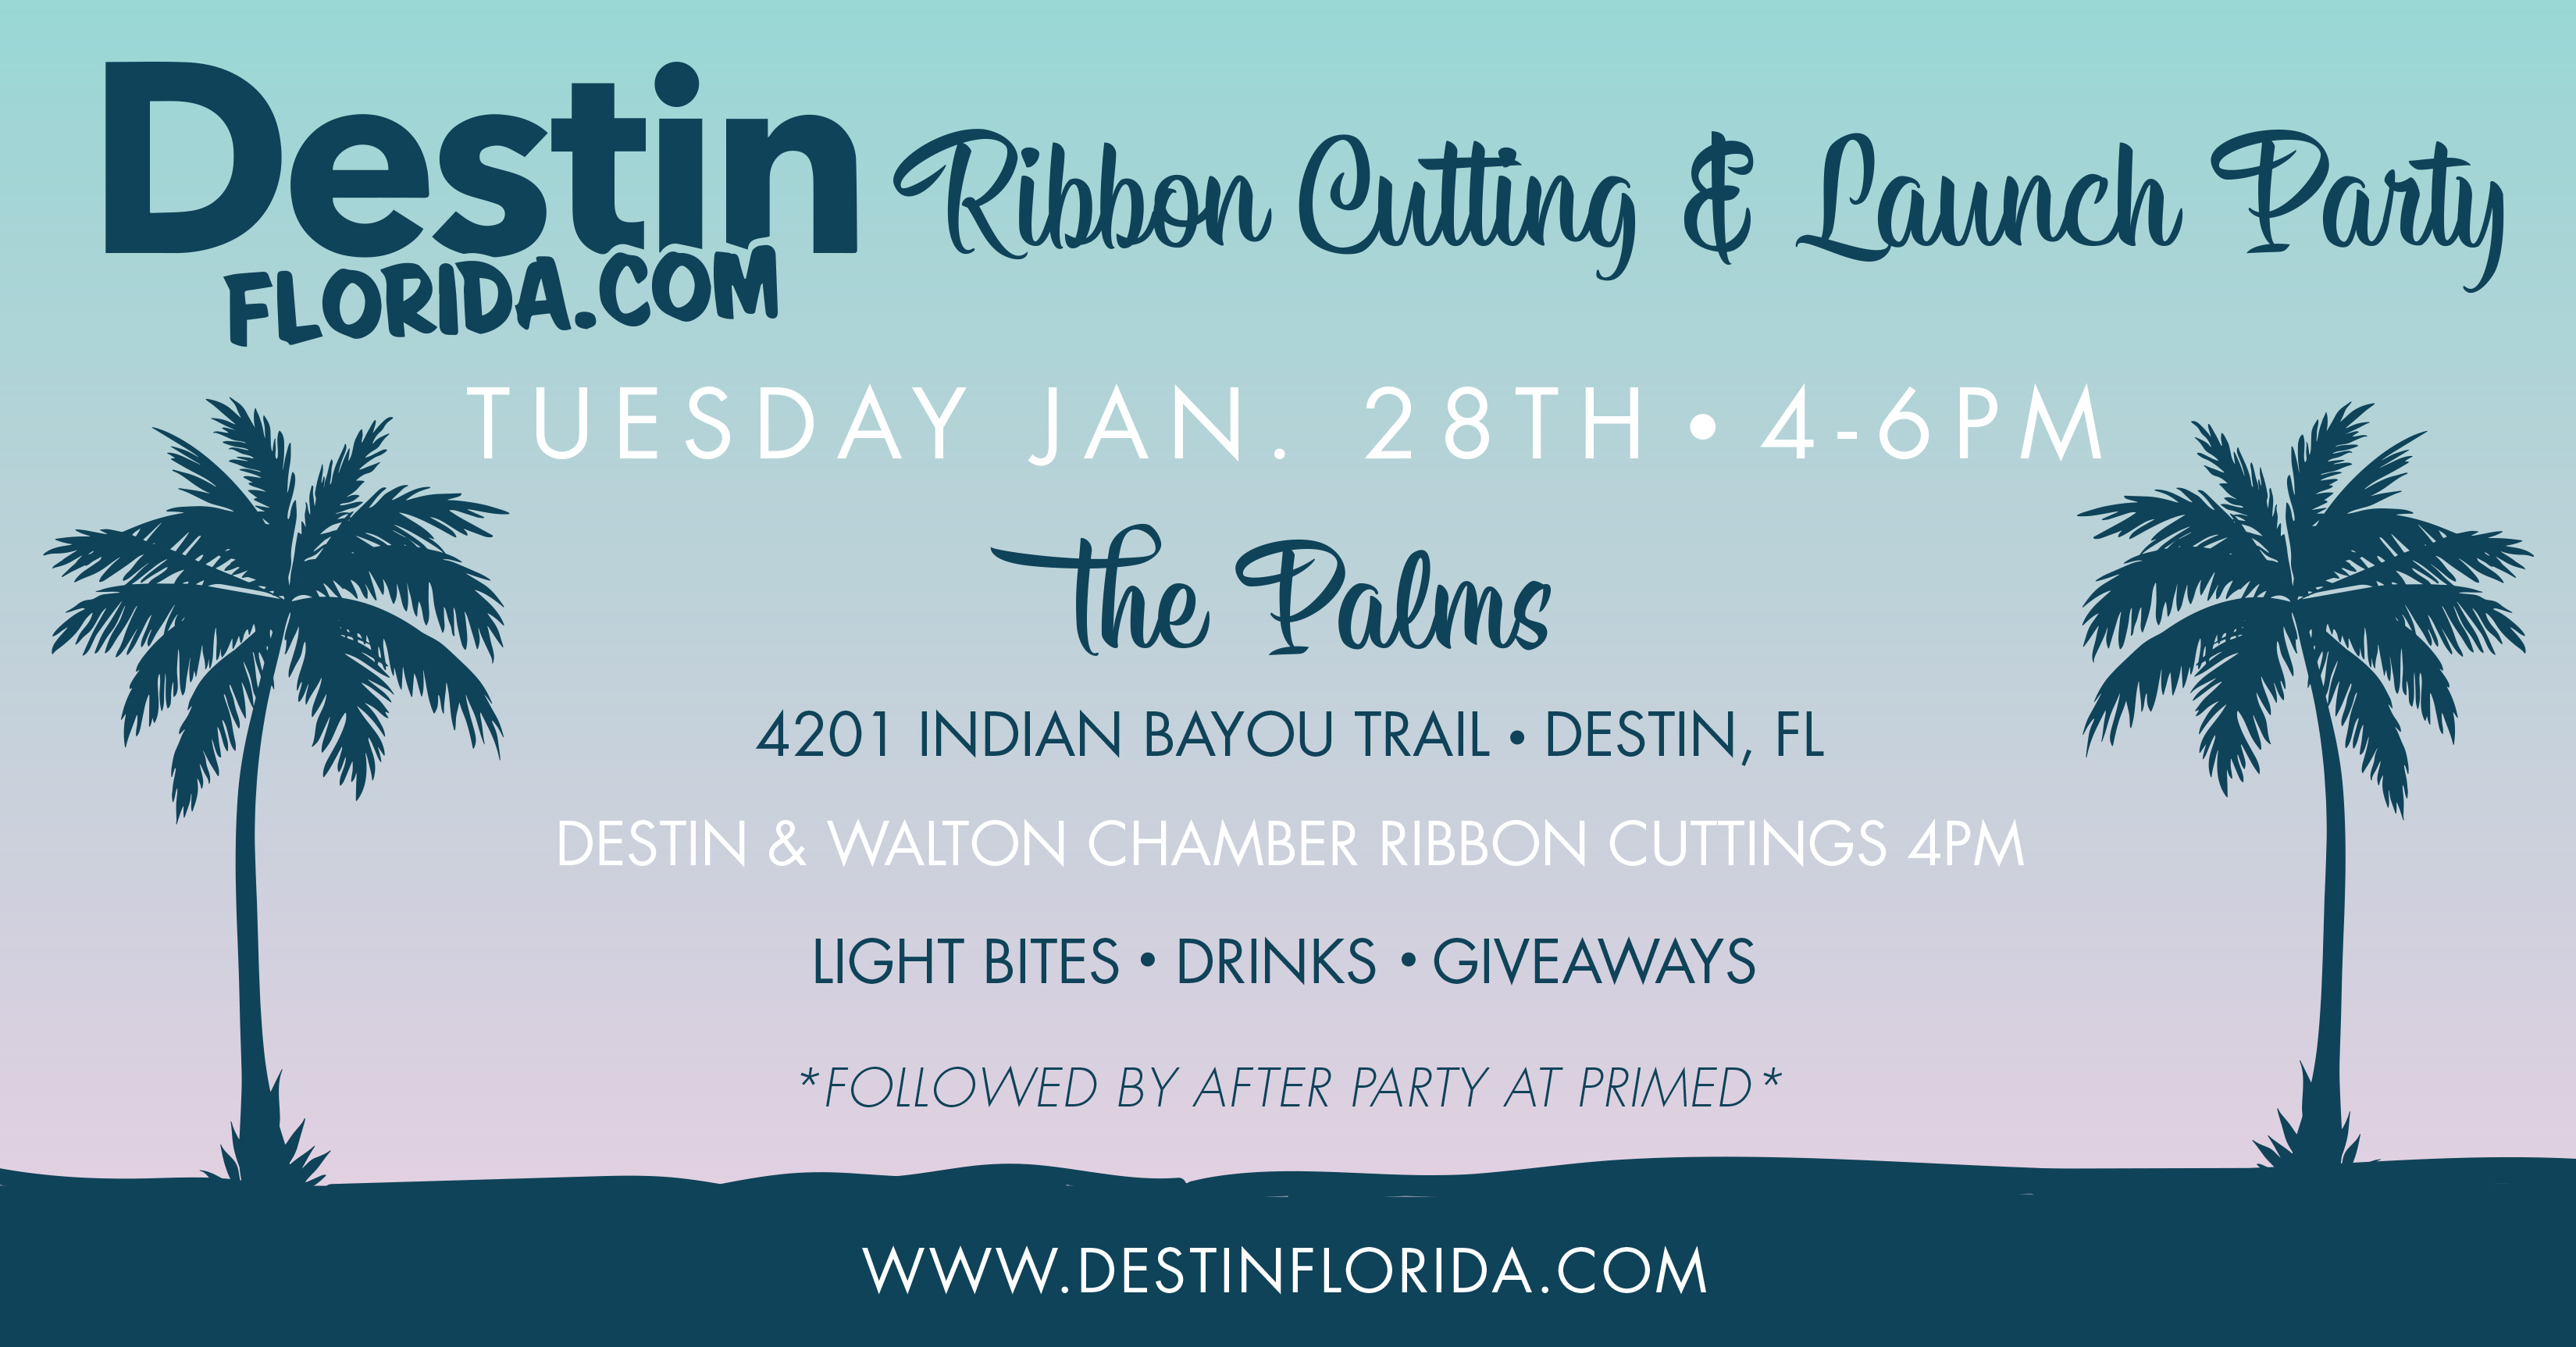 DestinFlorida.com Launch Party